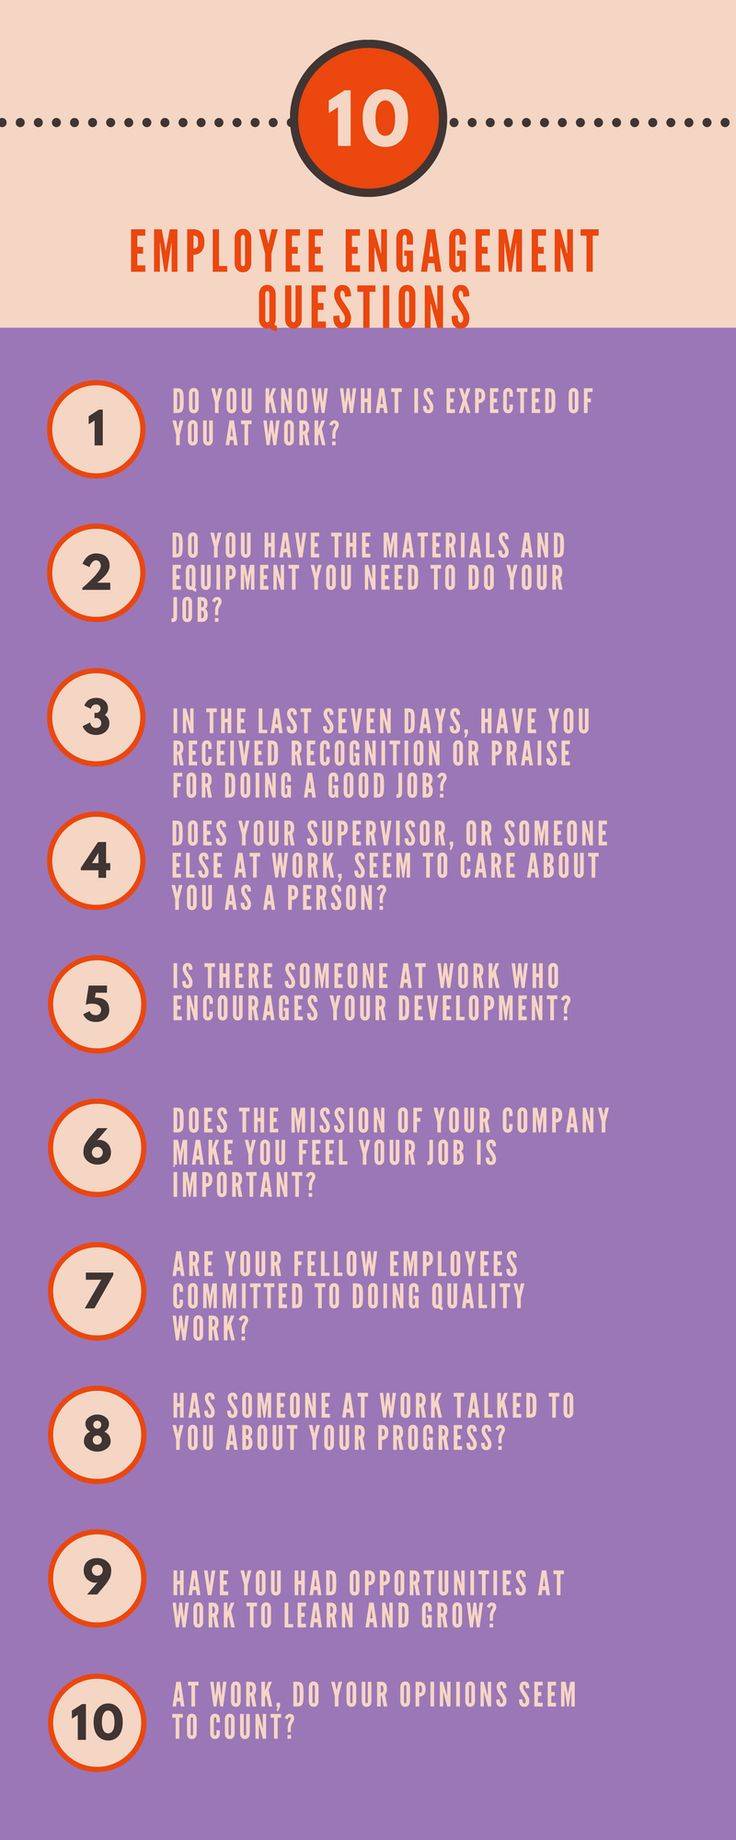 10 Employee Engagement Questions- When was the last time you asked your team these questions?